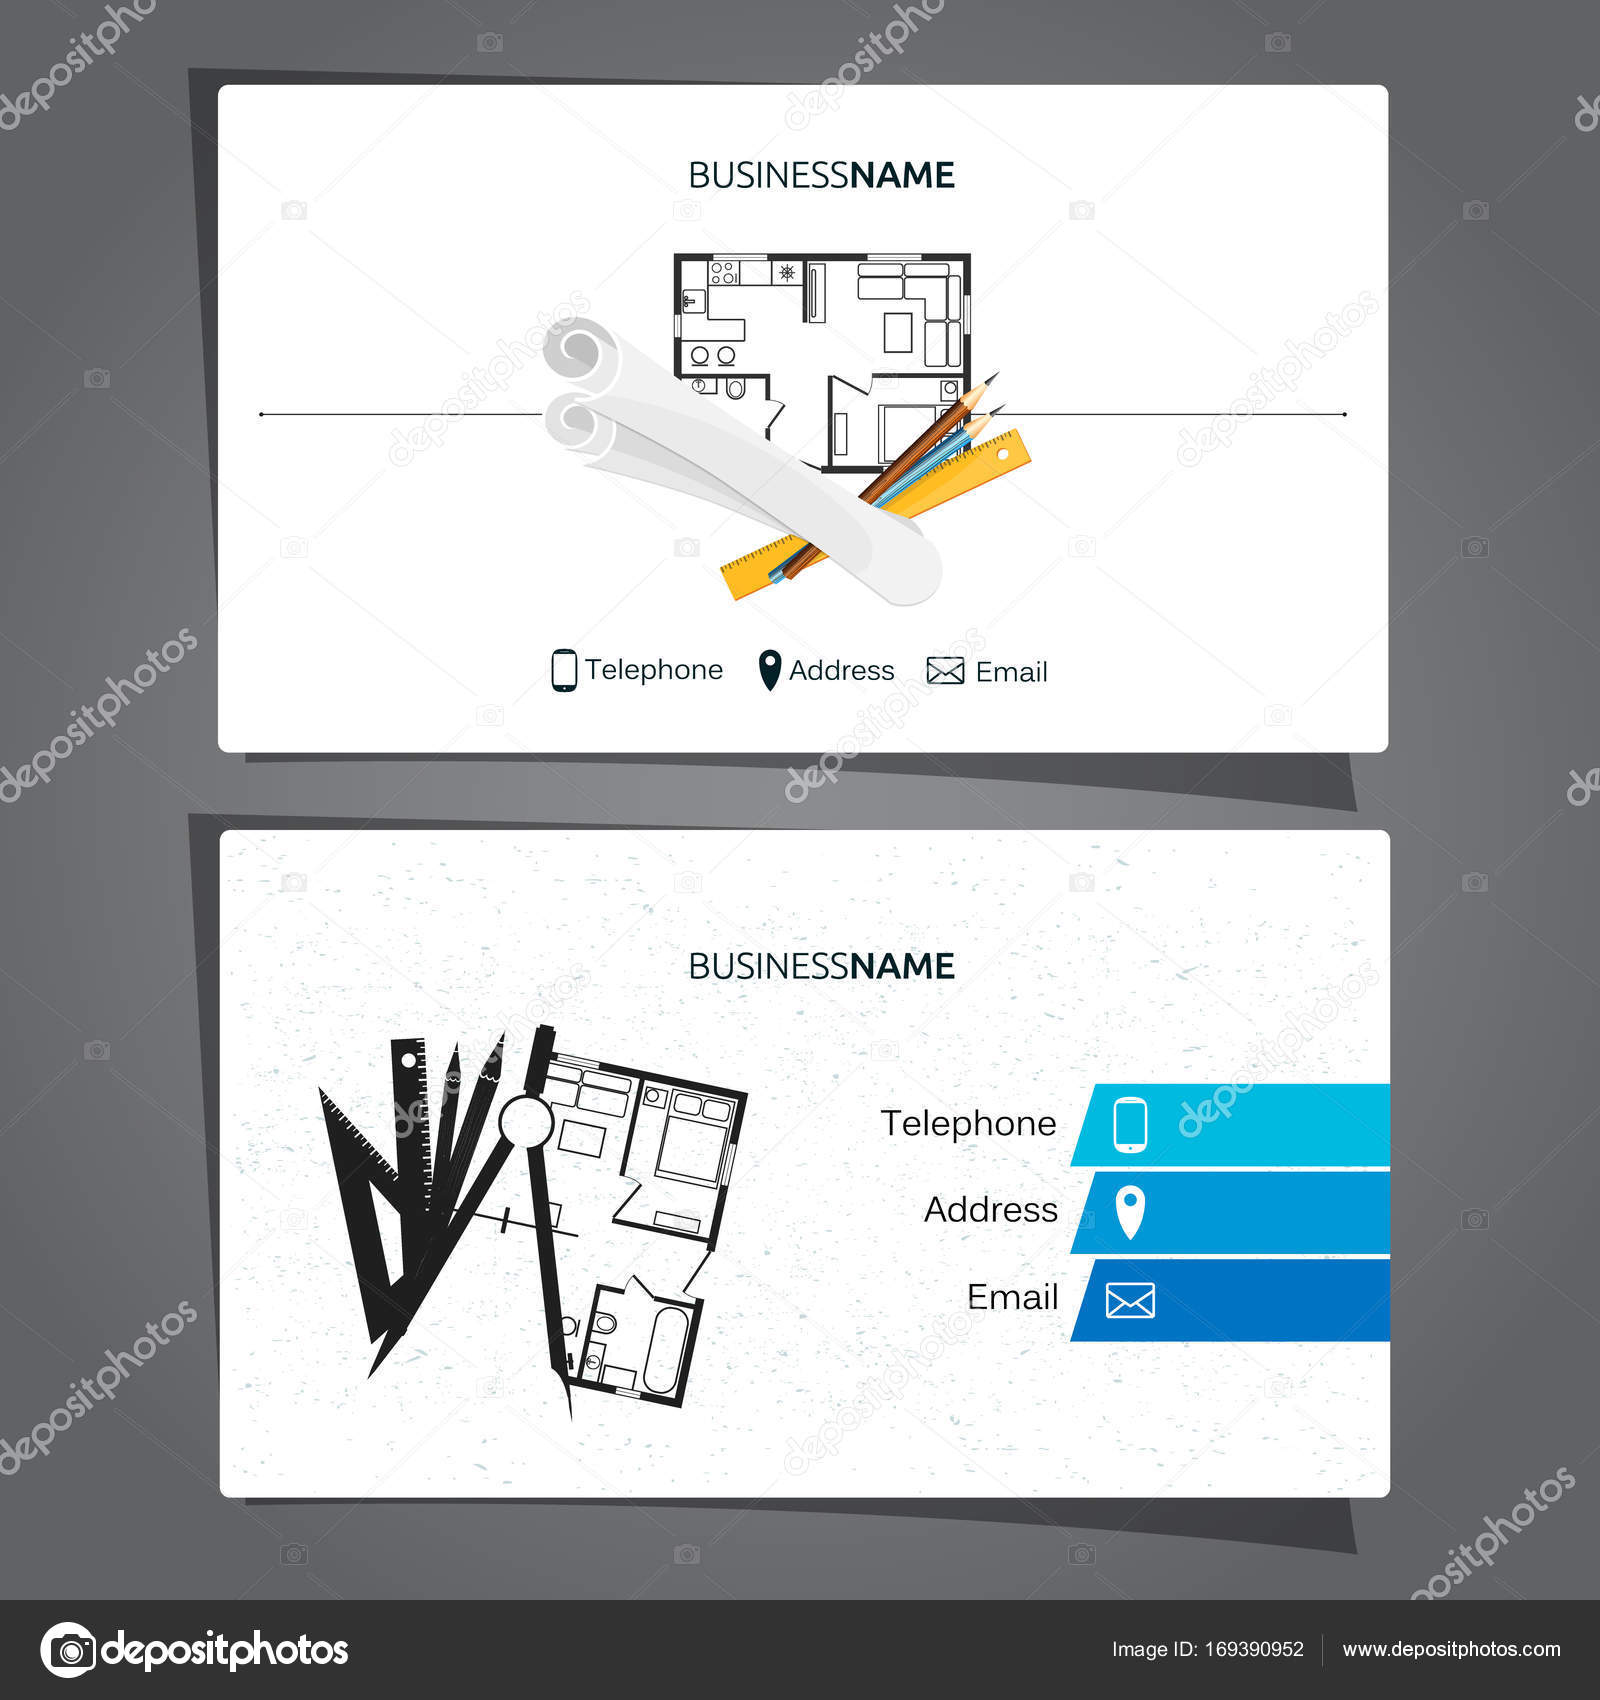 Business cards for construction choice image free business cards architecture and construction business card stock vector architecture and construction business card for the engineer vector magicingreecefo Images